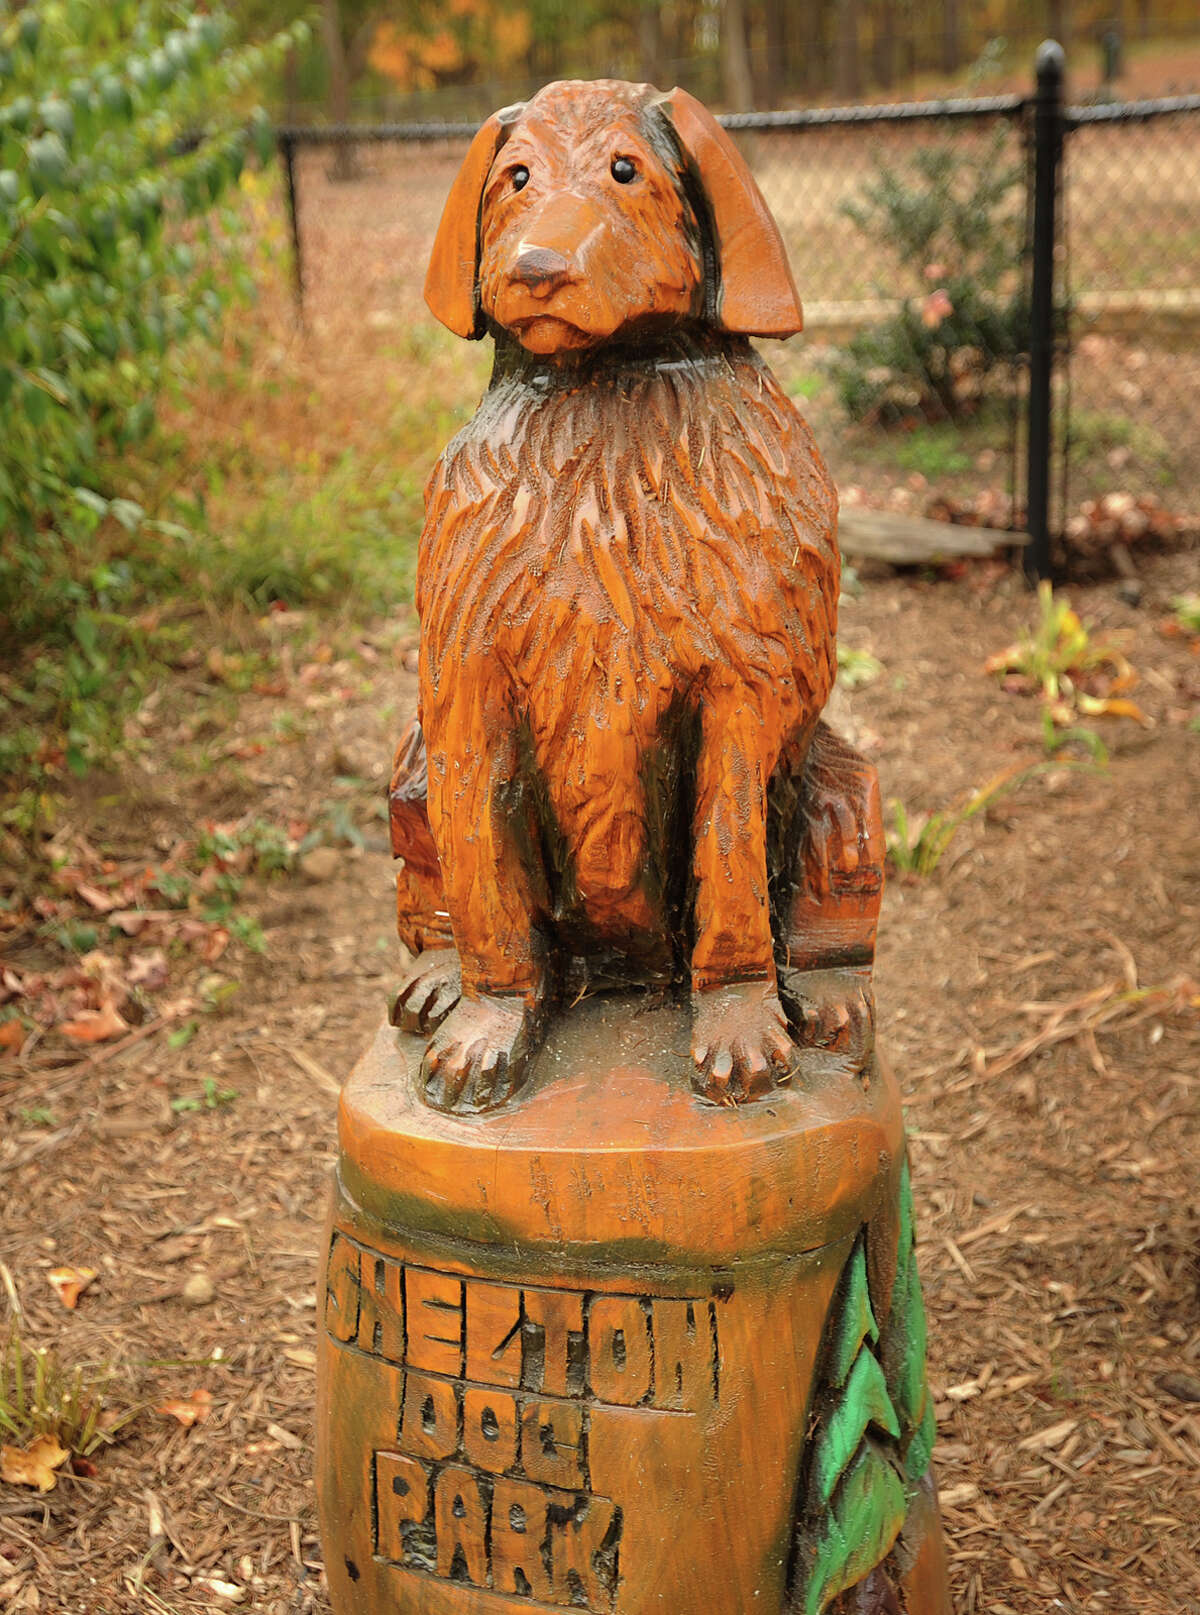 Dog sculptures carved from logs decorate the outside of the Shelton Dog Park on Nells Rock Road in Shelton, Conn. on Tuesday, October 29, 2013.